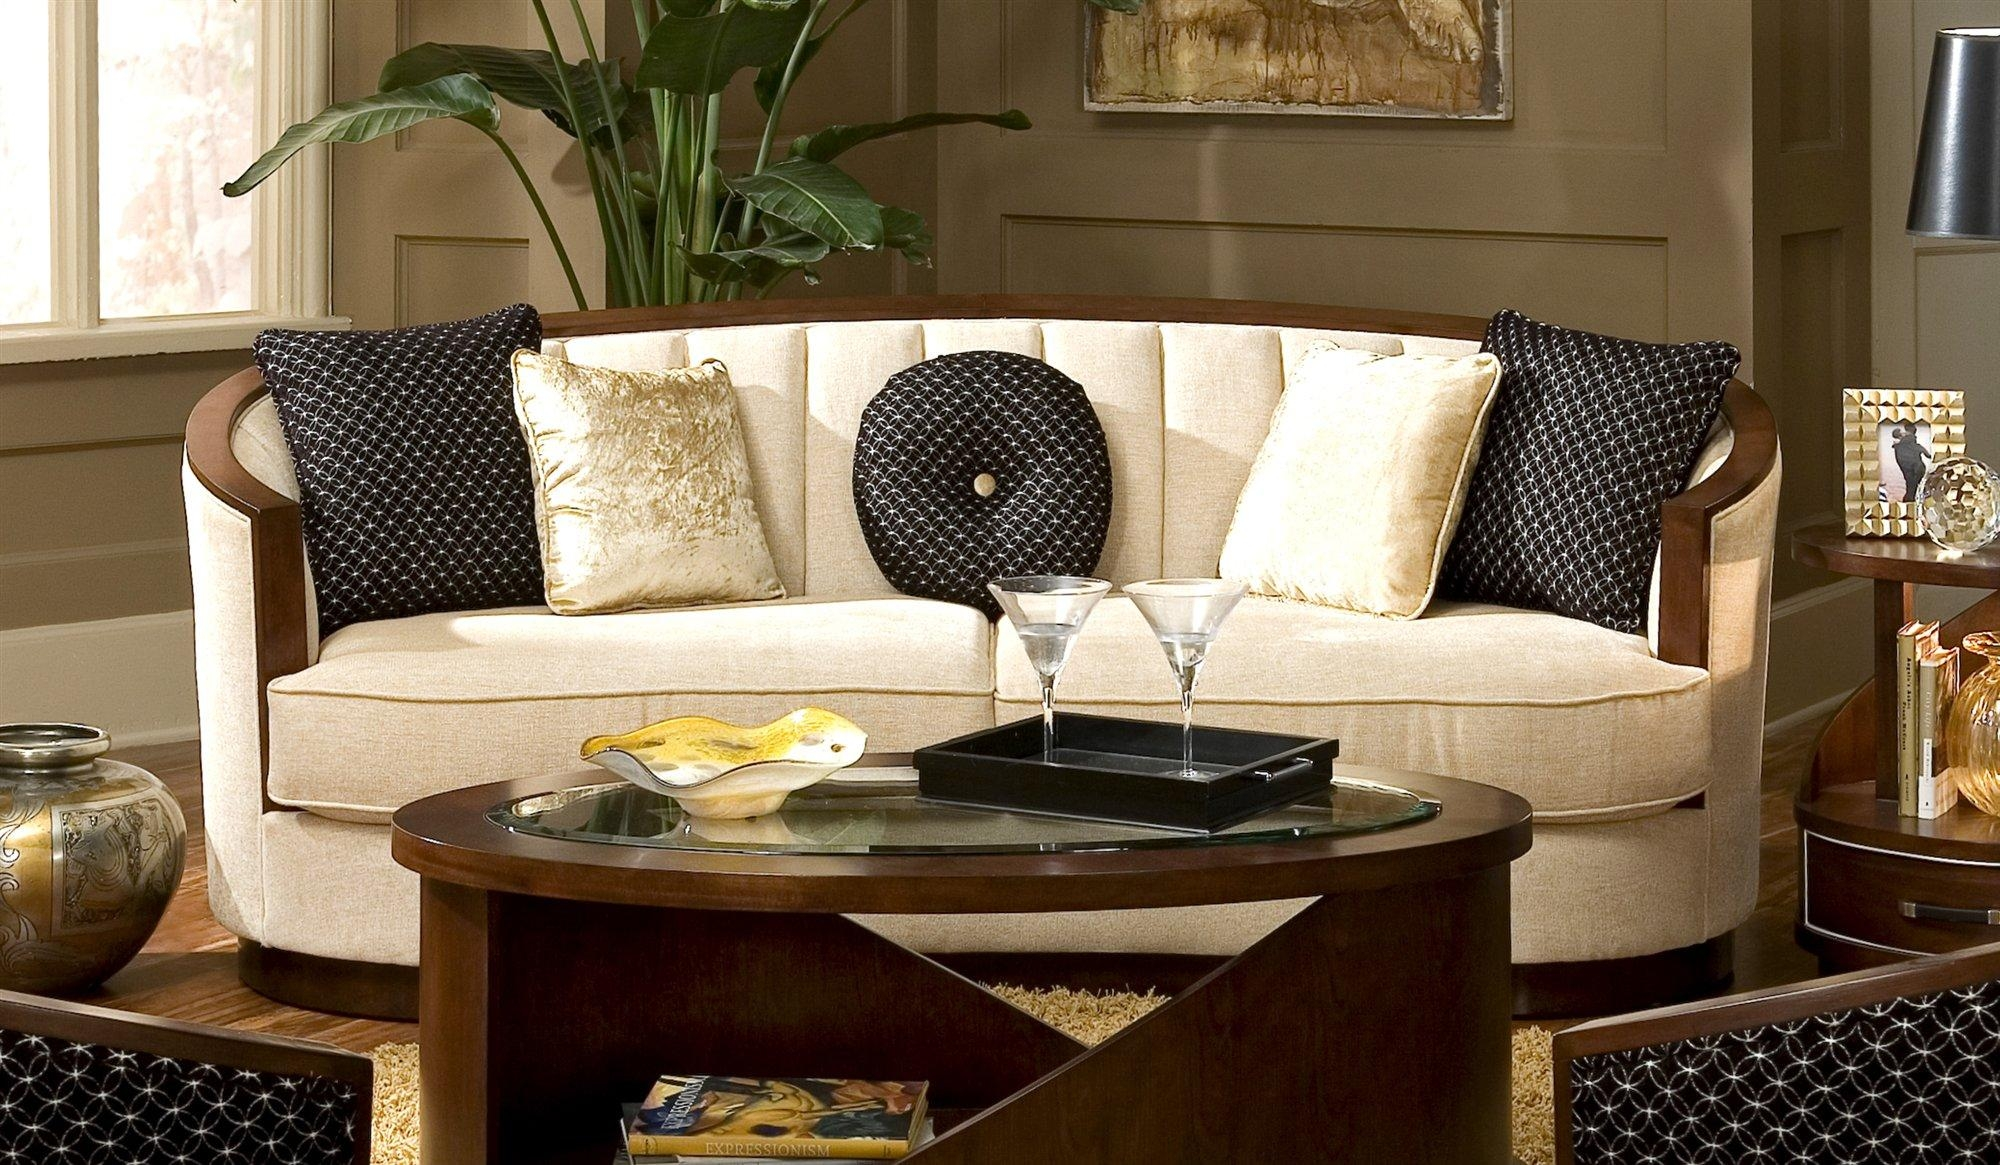 Fabulous Oval Sectional Sofas With Appealing Design – Ajara Decor Intended For Oval Sofas (View 6 of 21)